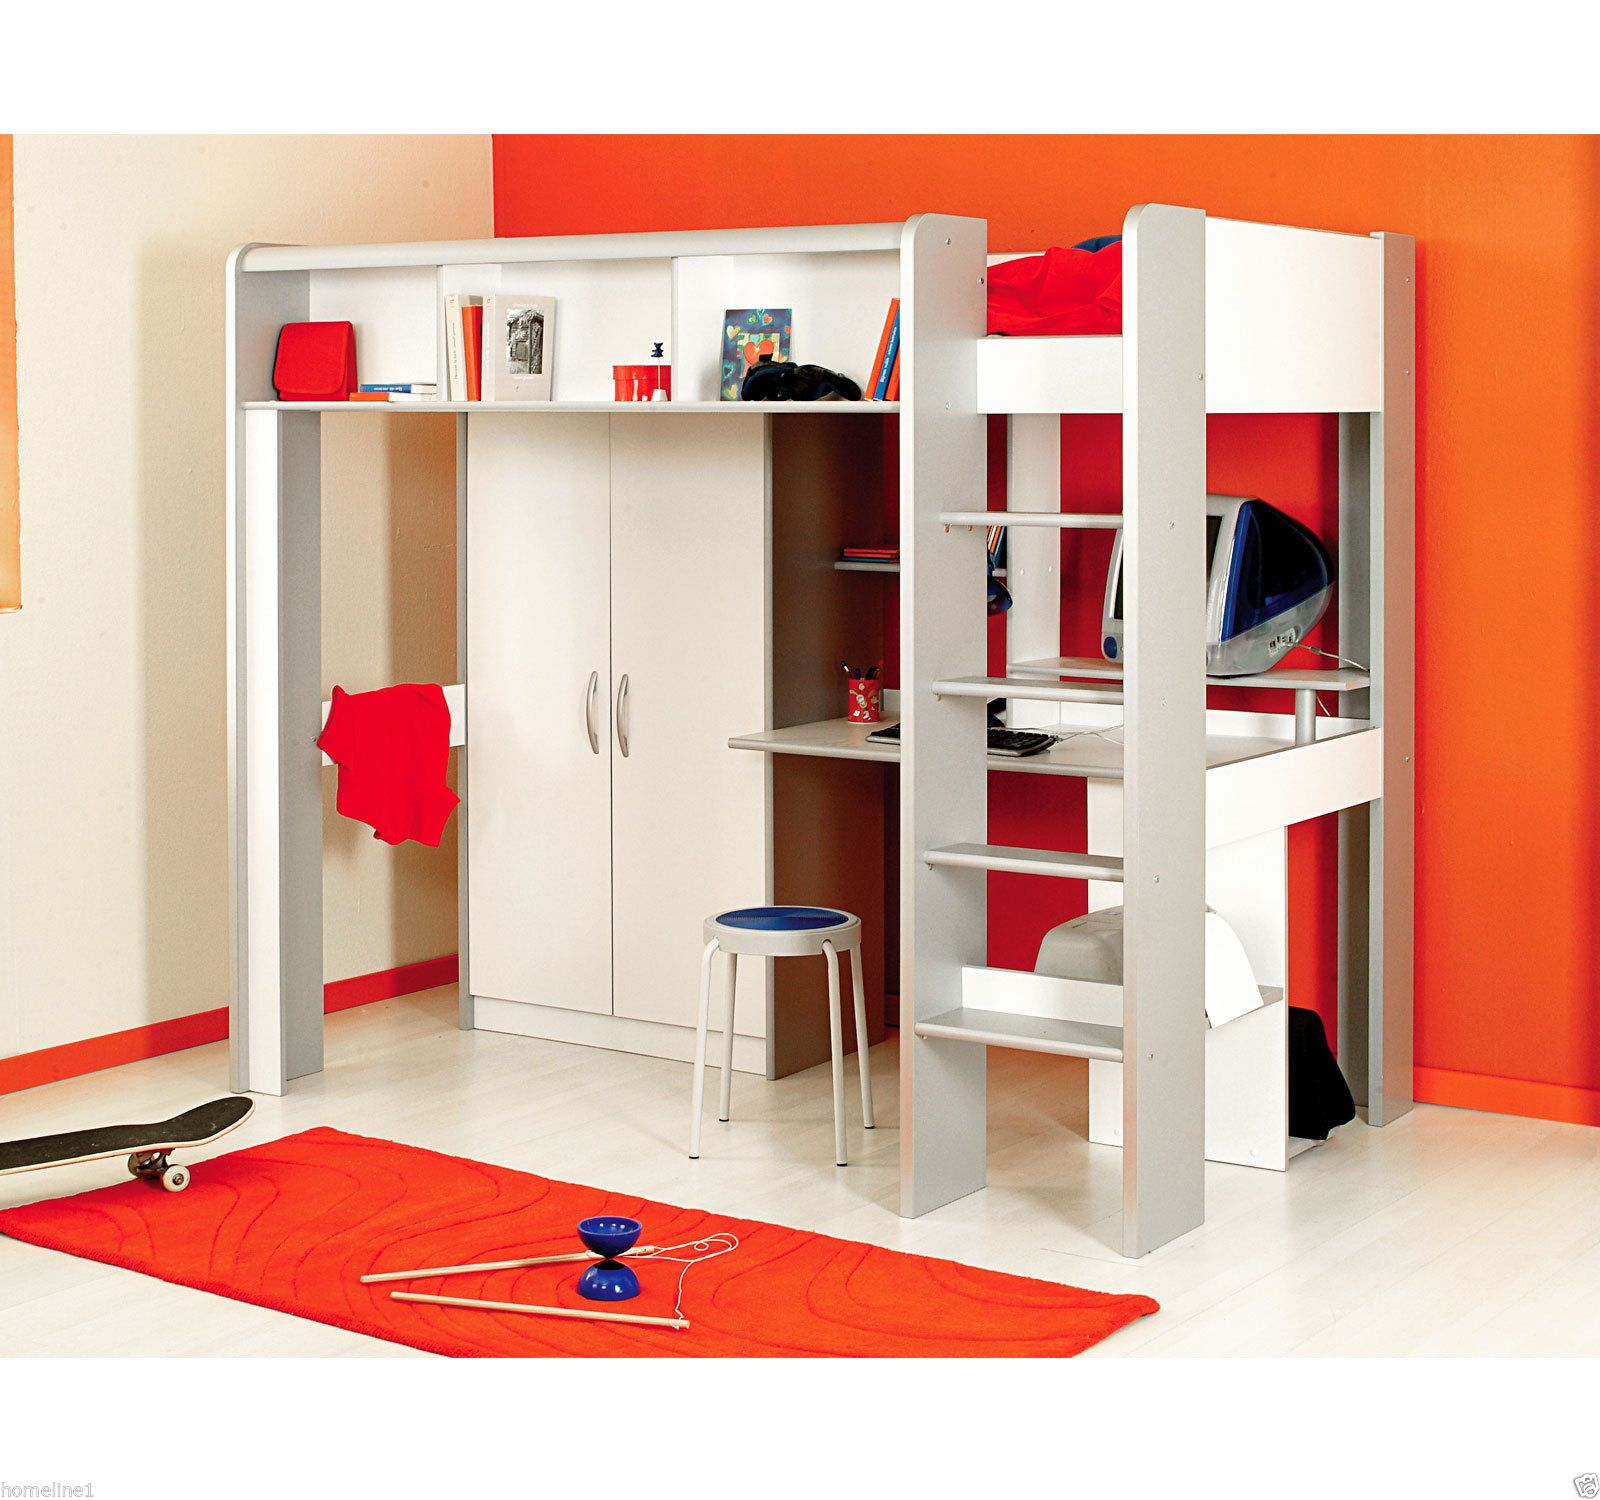 kinderbett hochbett mit treppe kleiderschrank schreibtisch wei parisot spacea ebay gloria. Black Bedroom Furniture Sets. Home Design Ideas